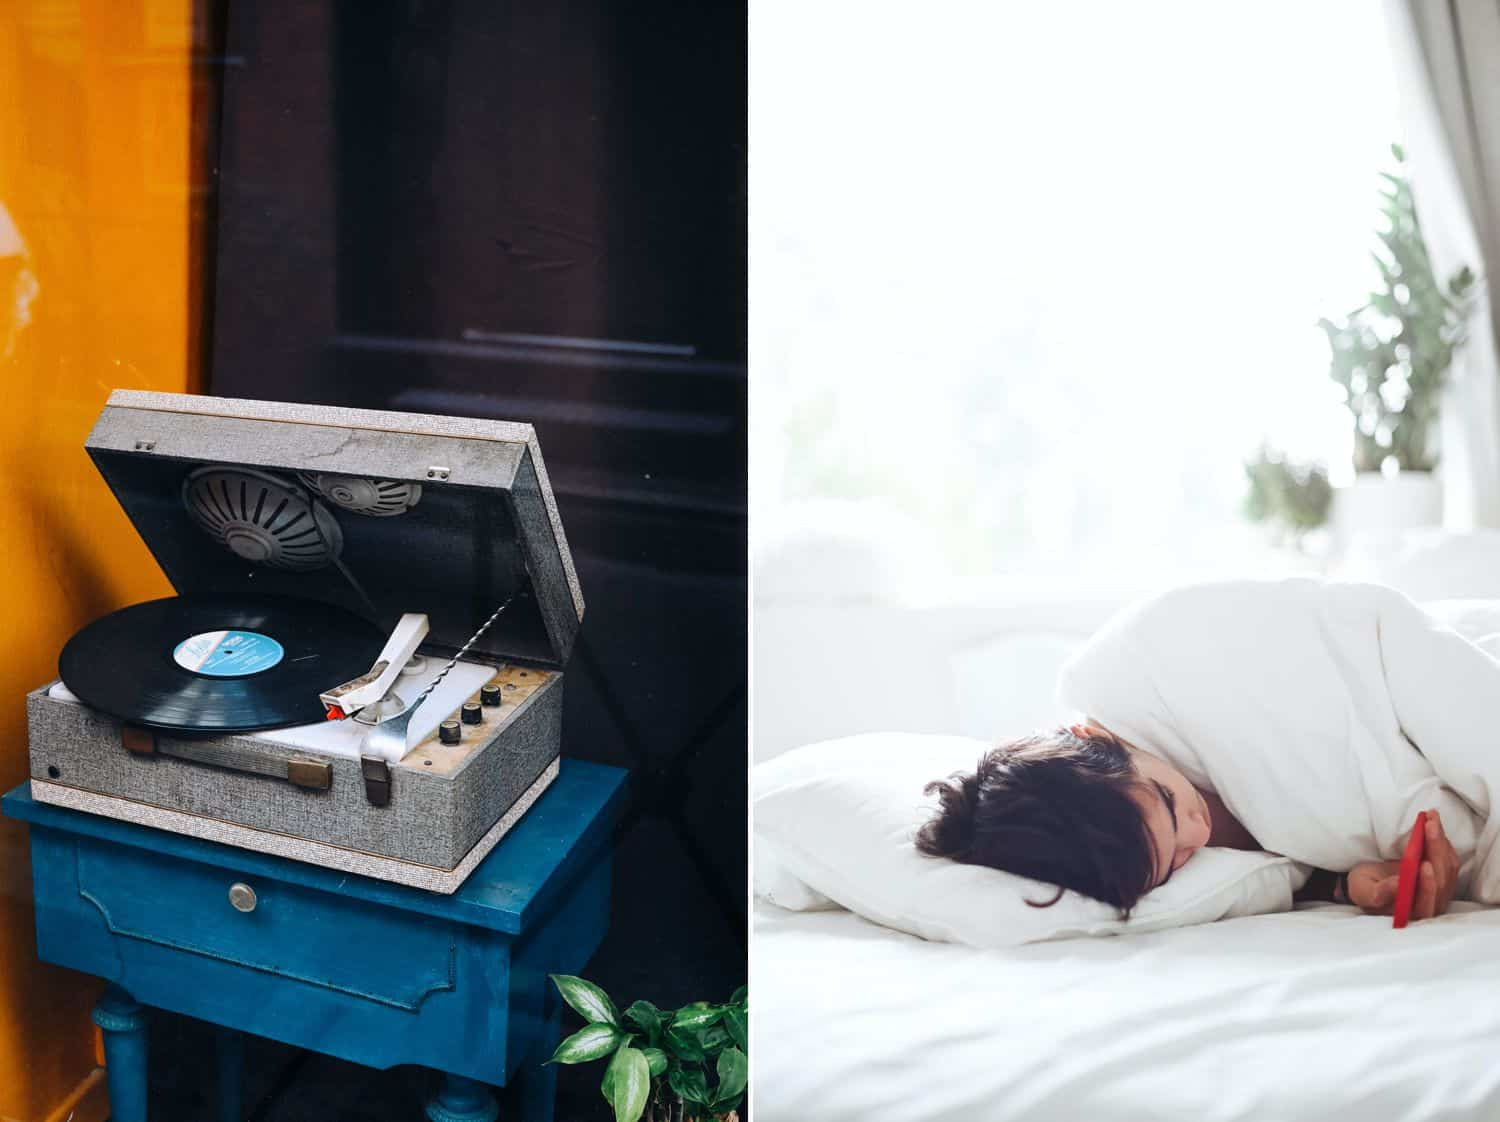 An open record player sits on a blue table by a yellow wall. A woman lies in a white bed looking at her smartphone.